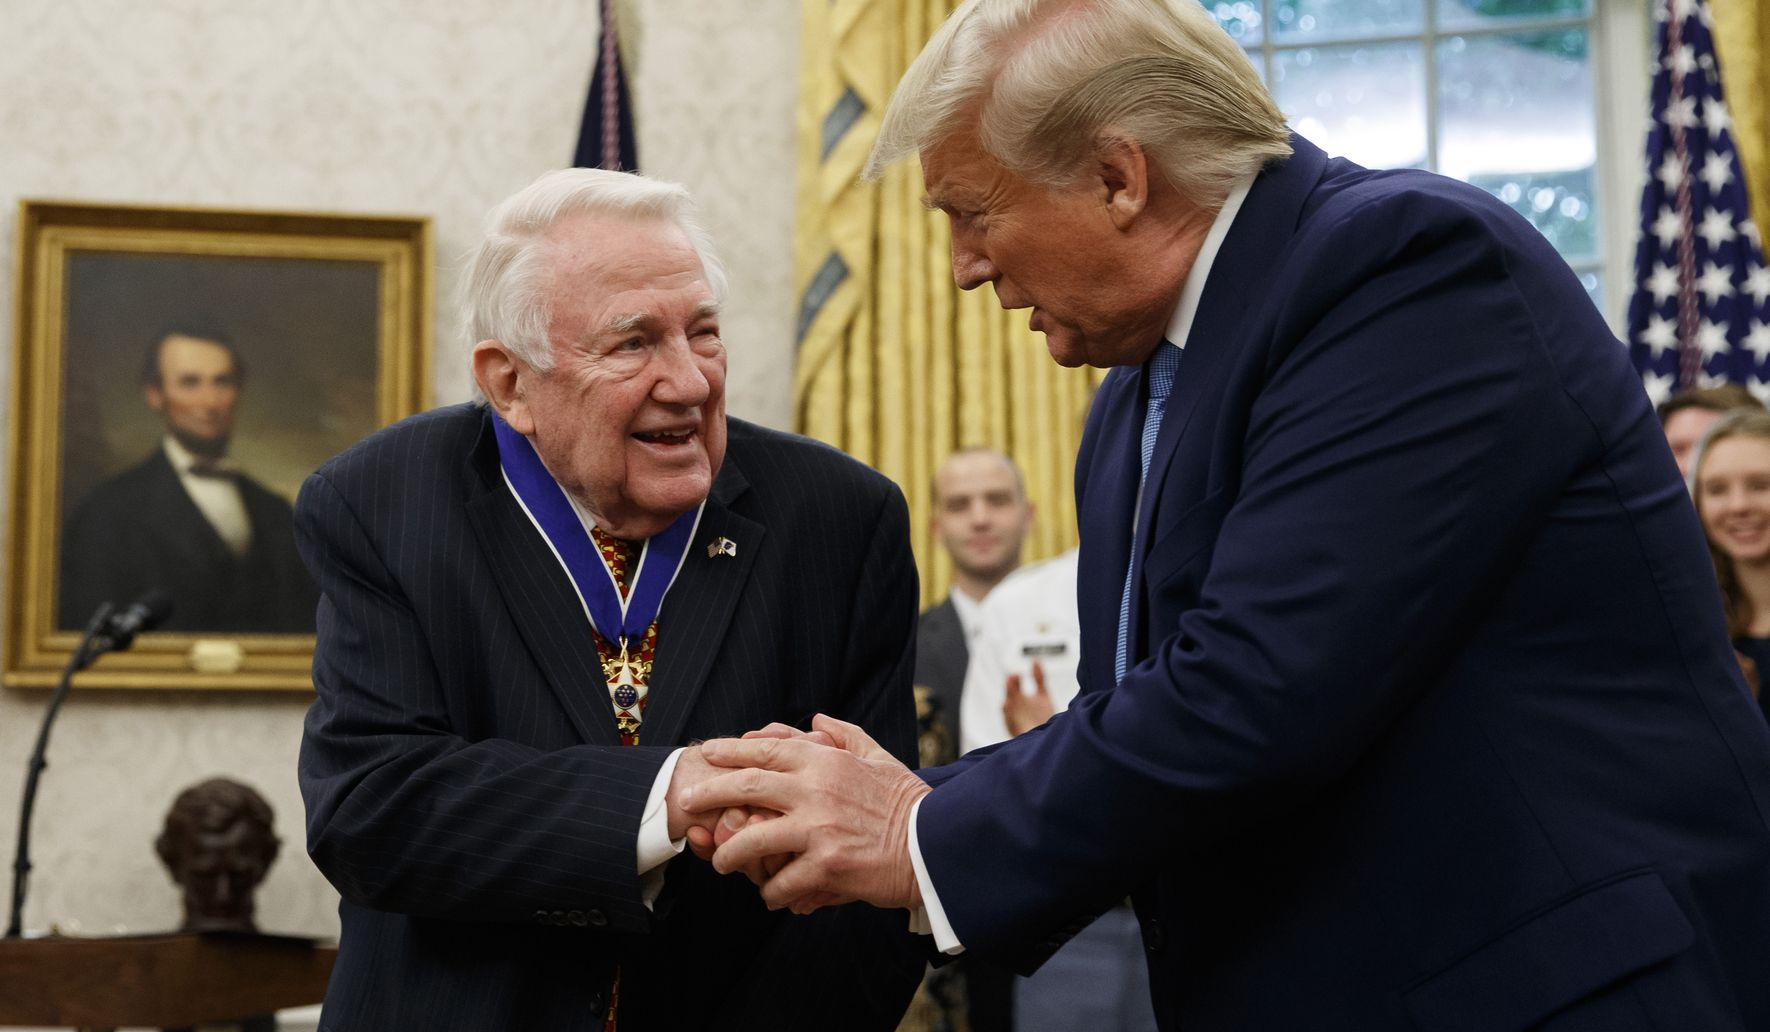 Trump honors Meese with Presidential Medal of Freedom